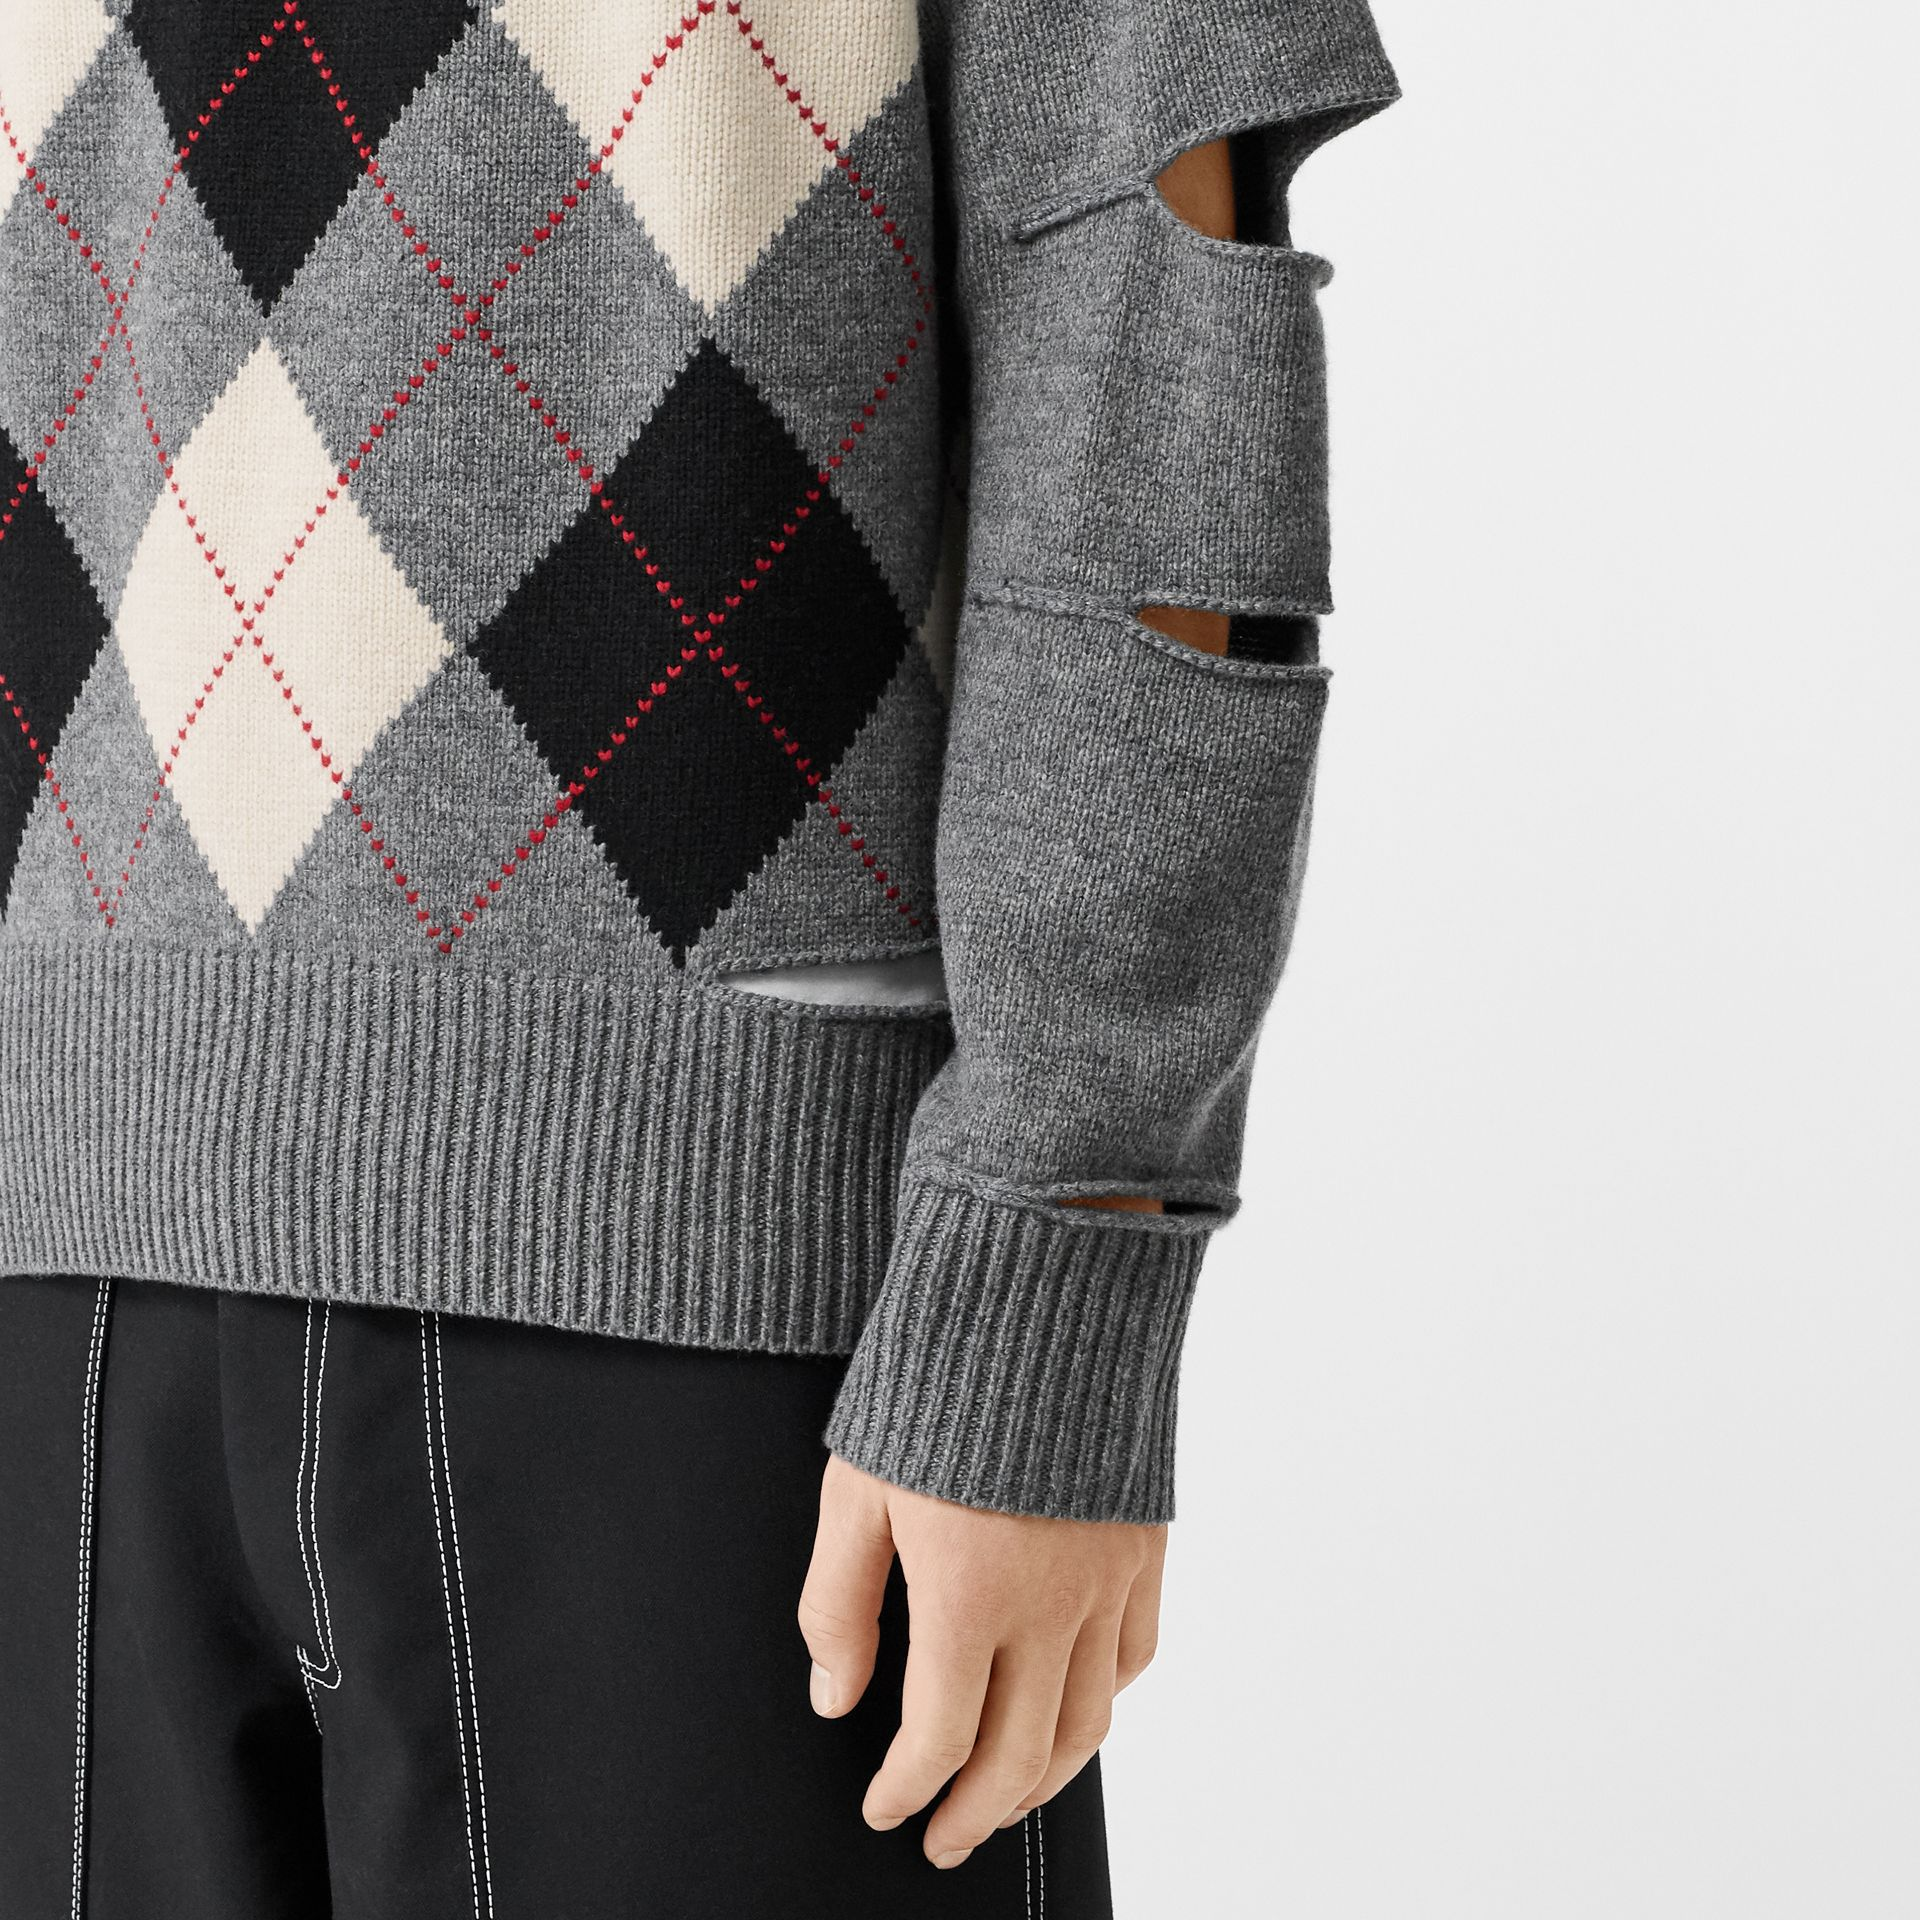 Cut-out Detail Merino Wool Cashmere Sweater in Mid Greymelange - Men | Burberry United States - gallery image 1